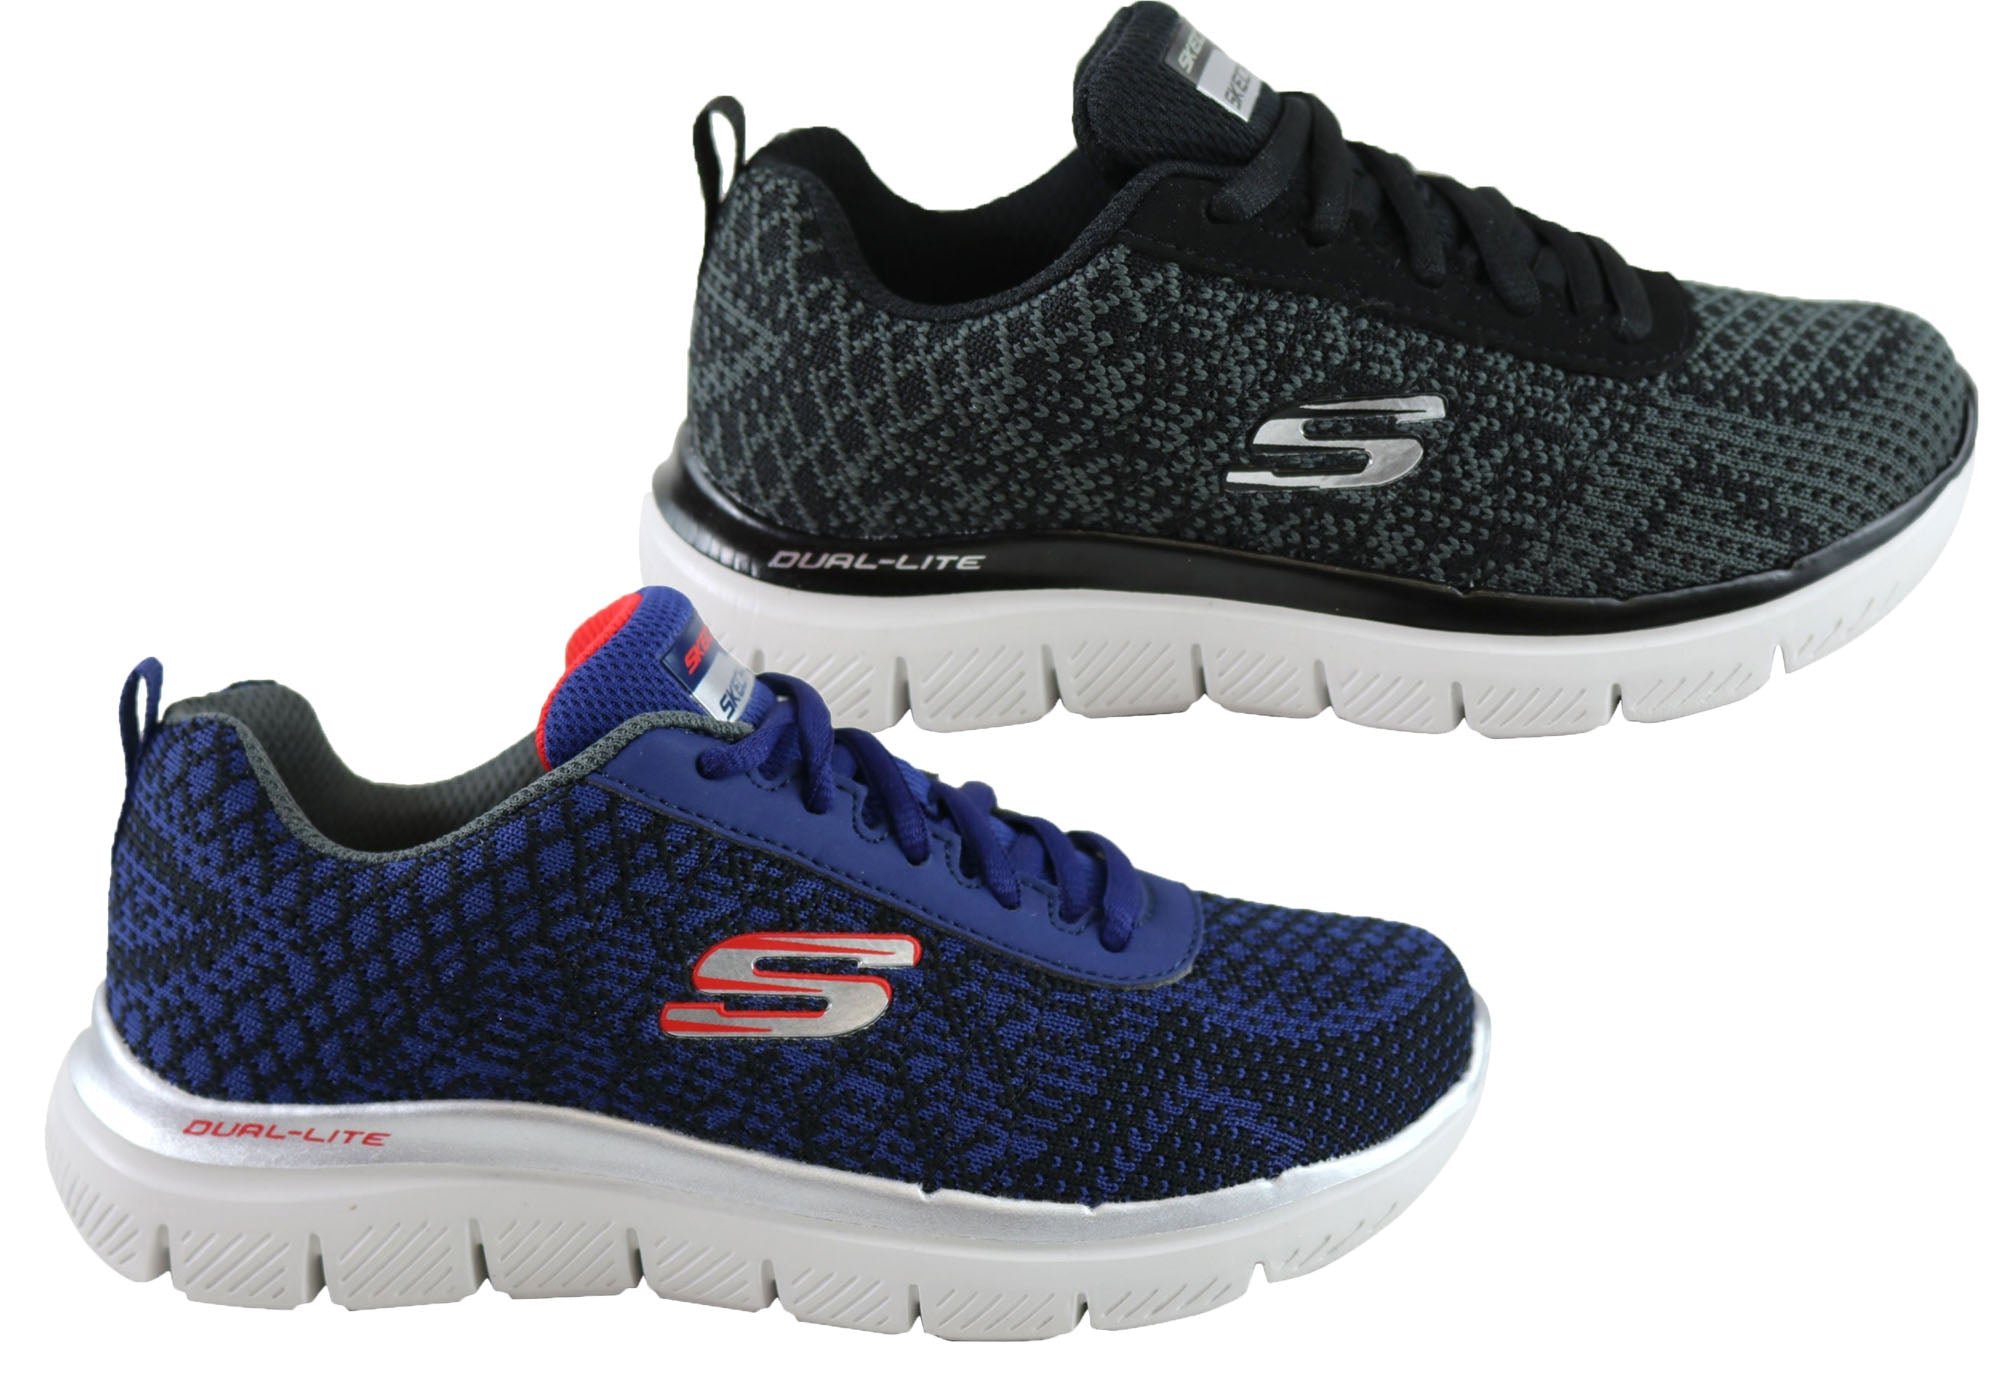 Details about NEW SKECHERS FLEX ADVANTAGE 2.0 GOLDEN POINT BOYS MEMORY FOAM SPORT SHOES